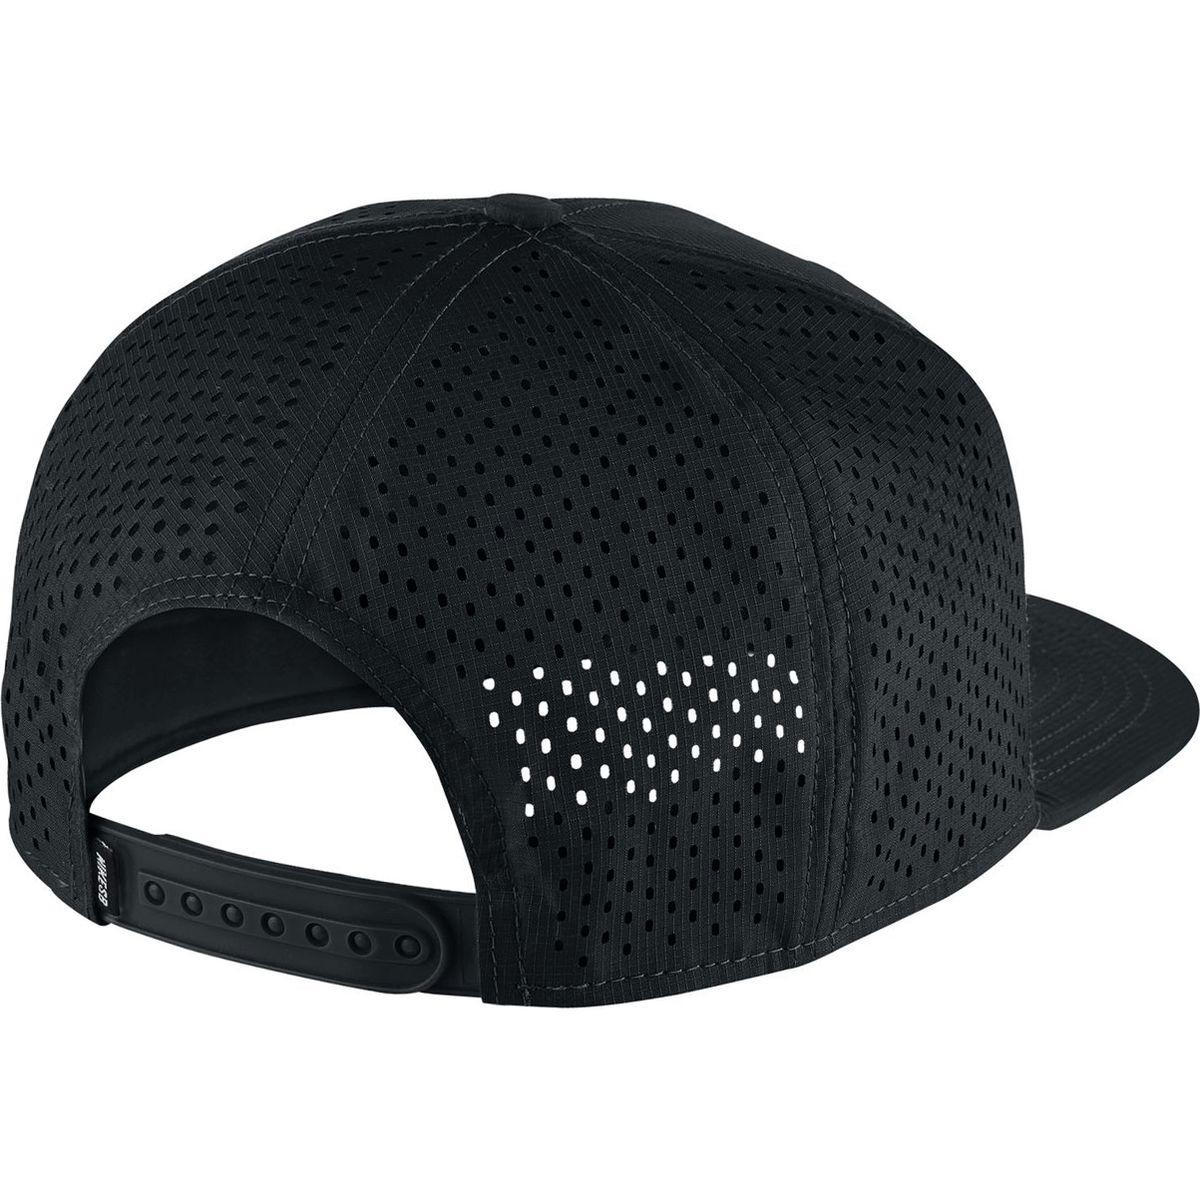 3043d21159896 ... clearance lyst nike sb aero pro cap in black for men b4271 affef